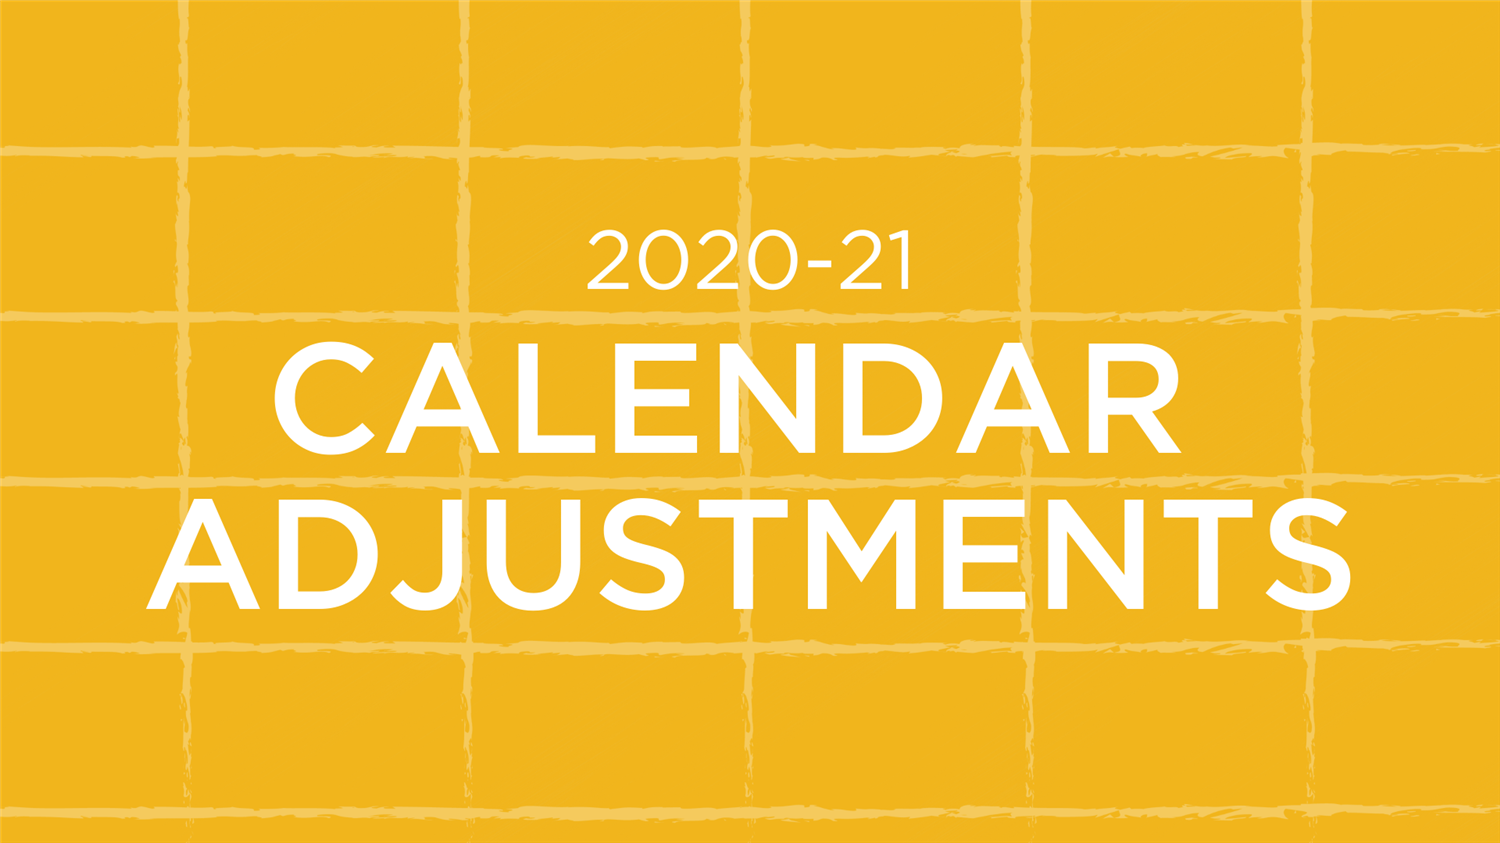 ICYMI: 2020-21 Calendar Adjustments